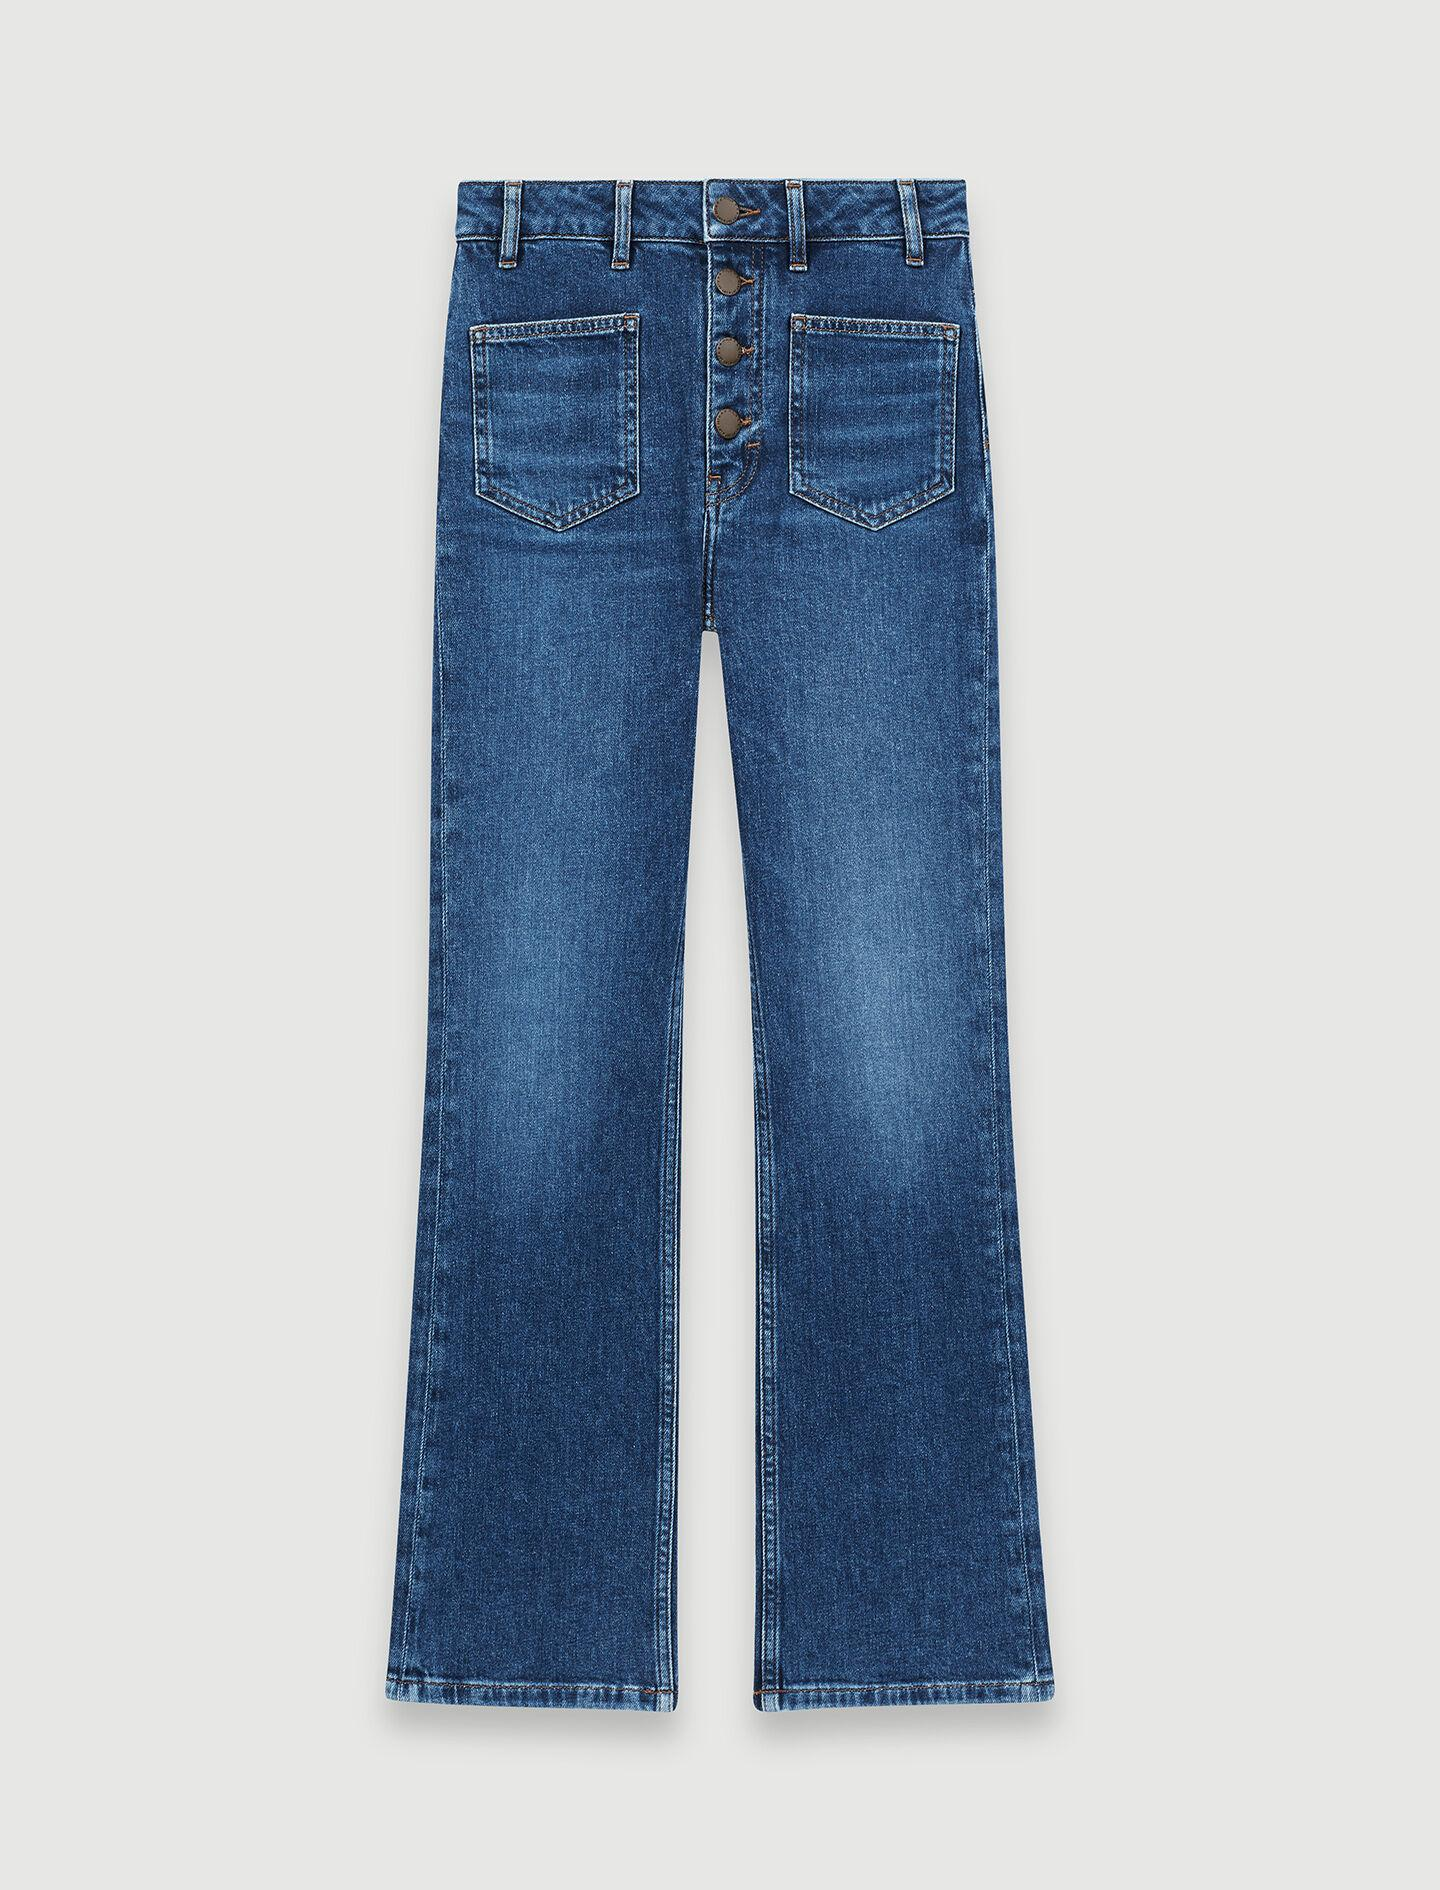 JEANS WITH POCKETS 4